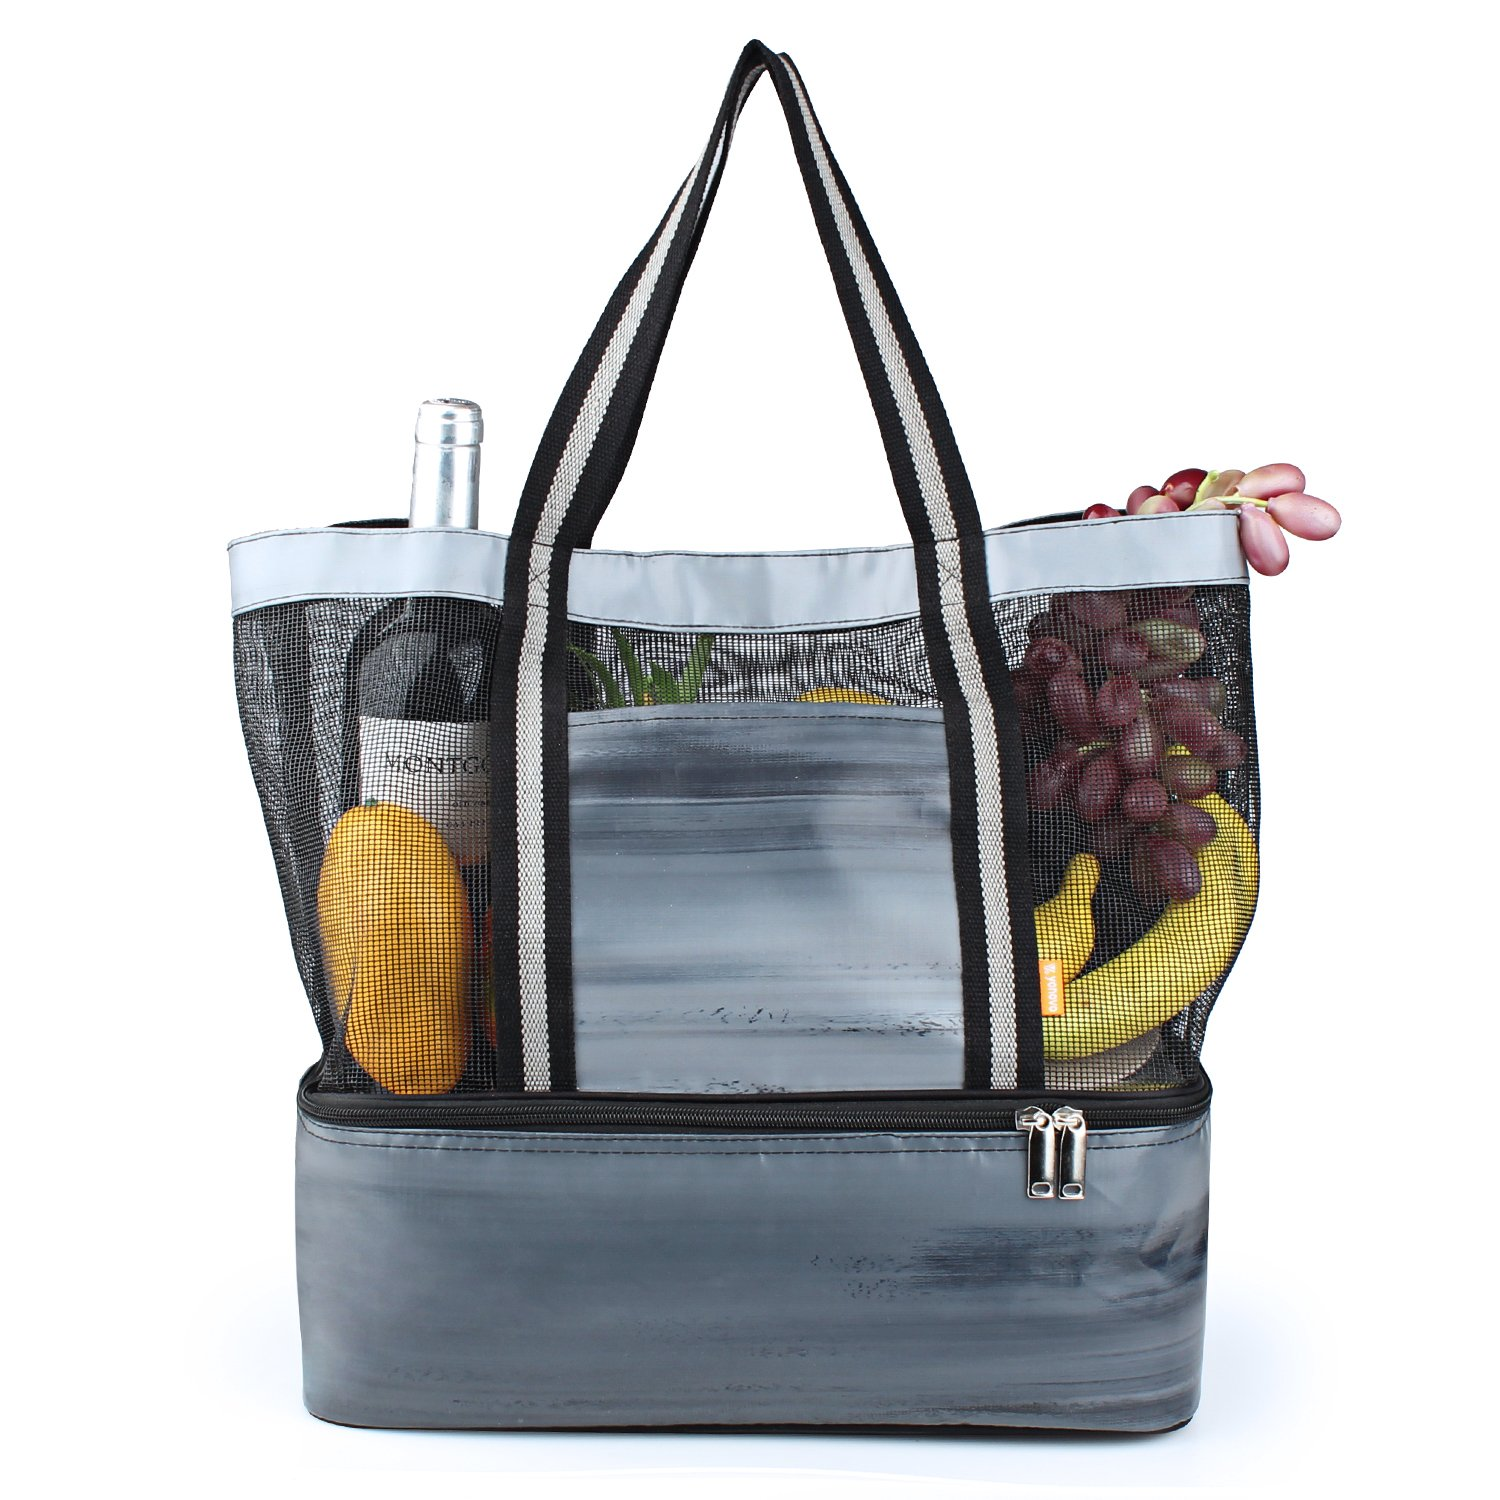 YONOVOBeachMeshBagLightweight Cooler Totewith InsulatedFood Grade Compartment forPicnic Camping Traveling (Grey)